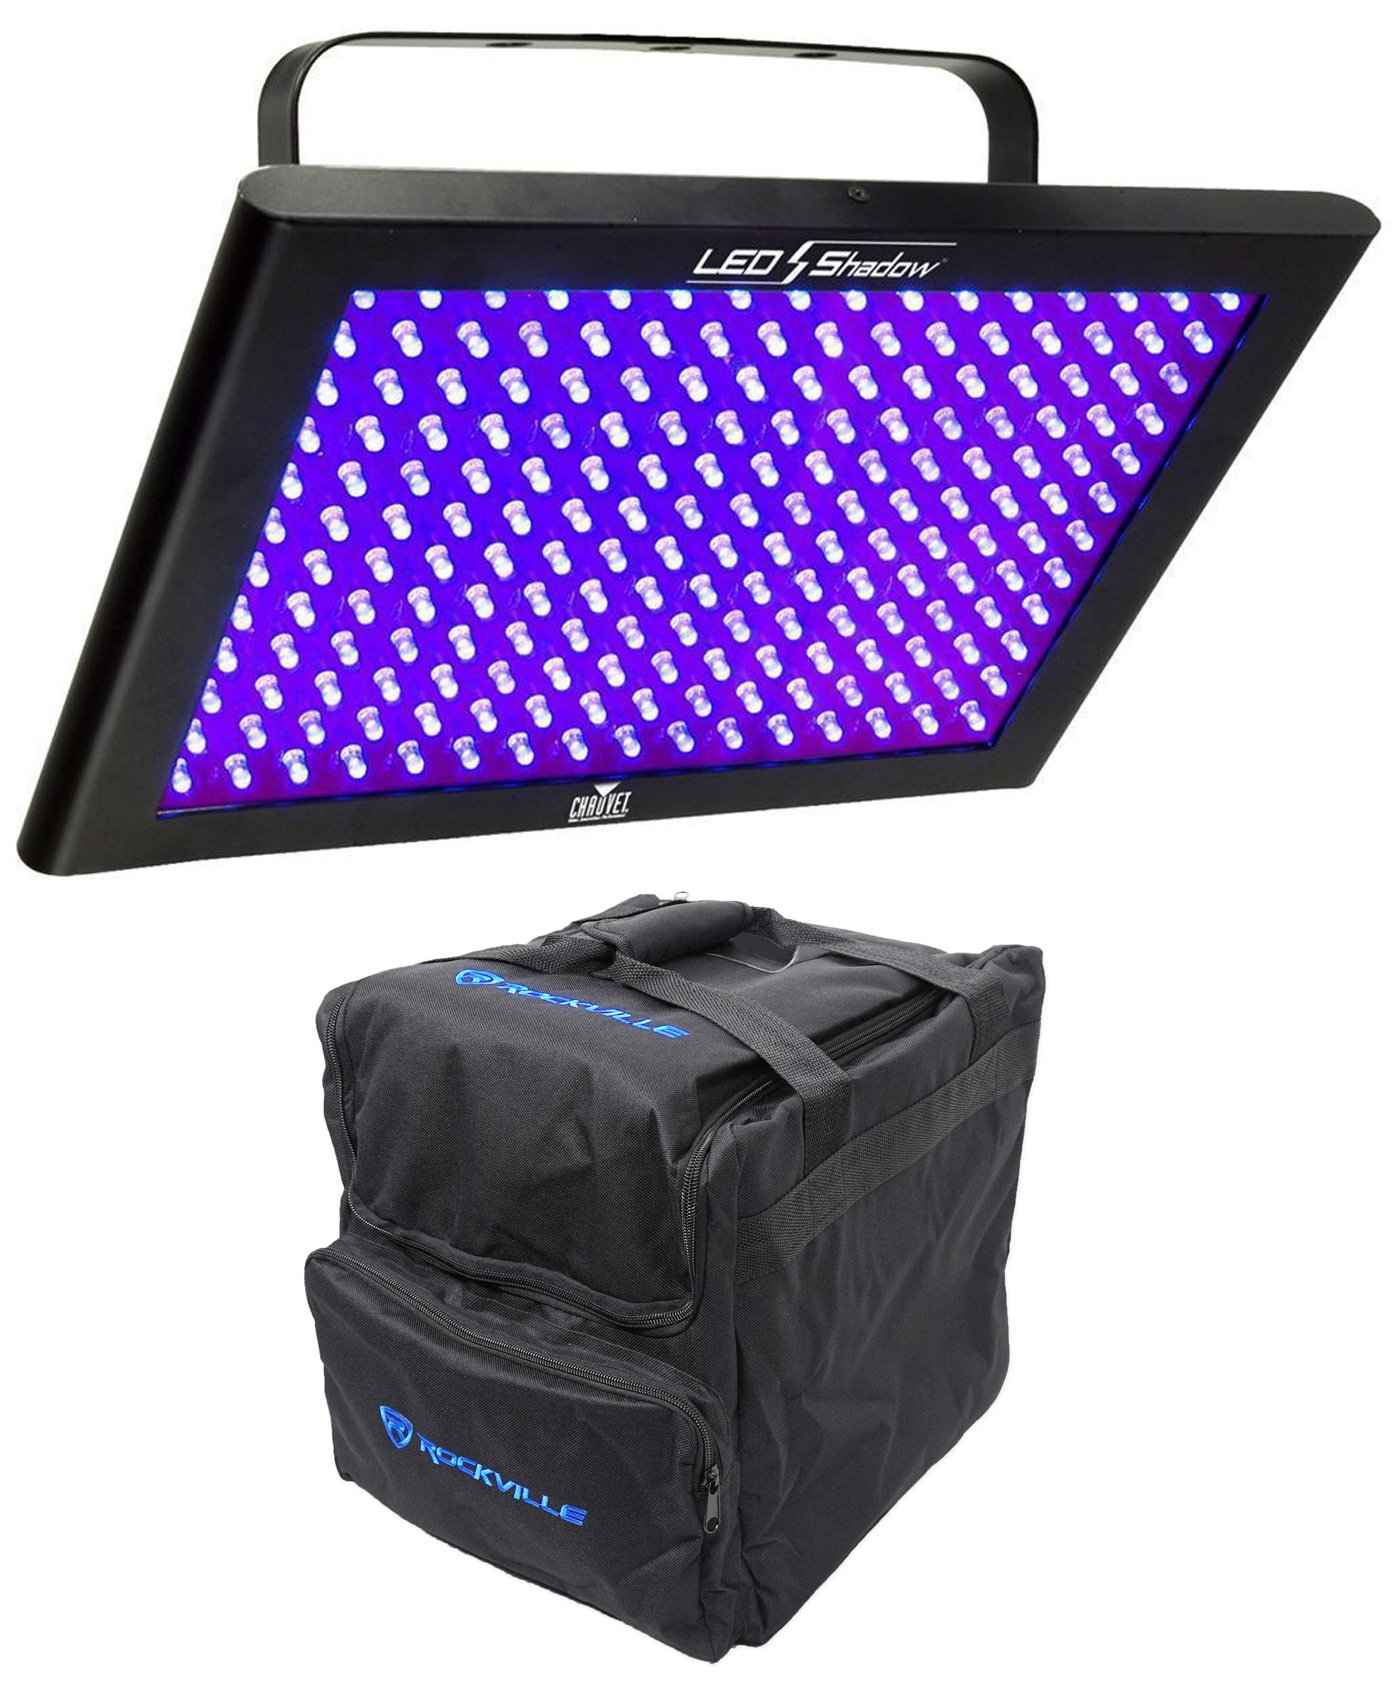 Chauvet DJ LED SHADOW / Club DMX 512 3 CH. Blacklight Panel+Carry Bag LEDSHADOW